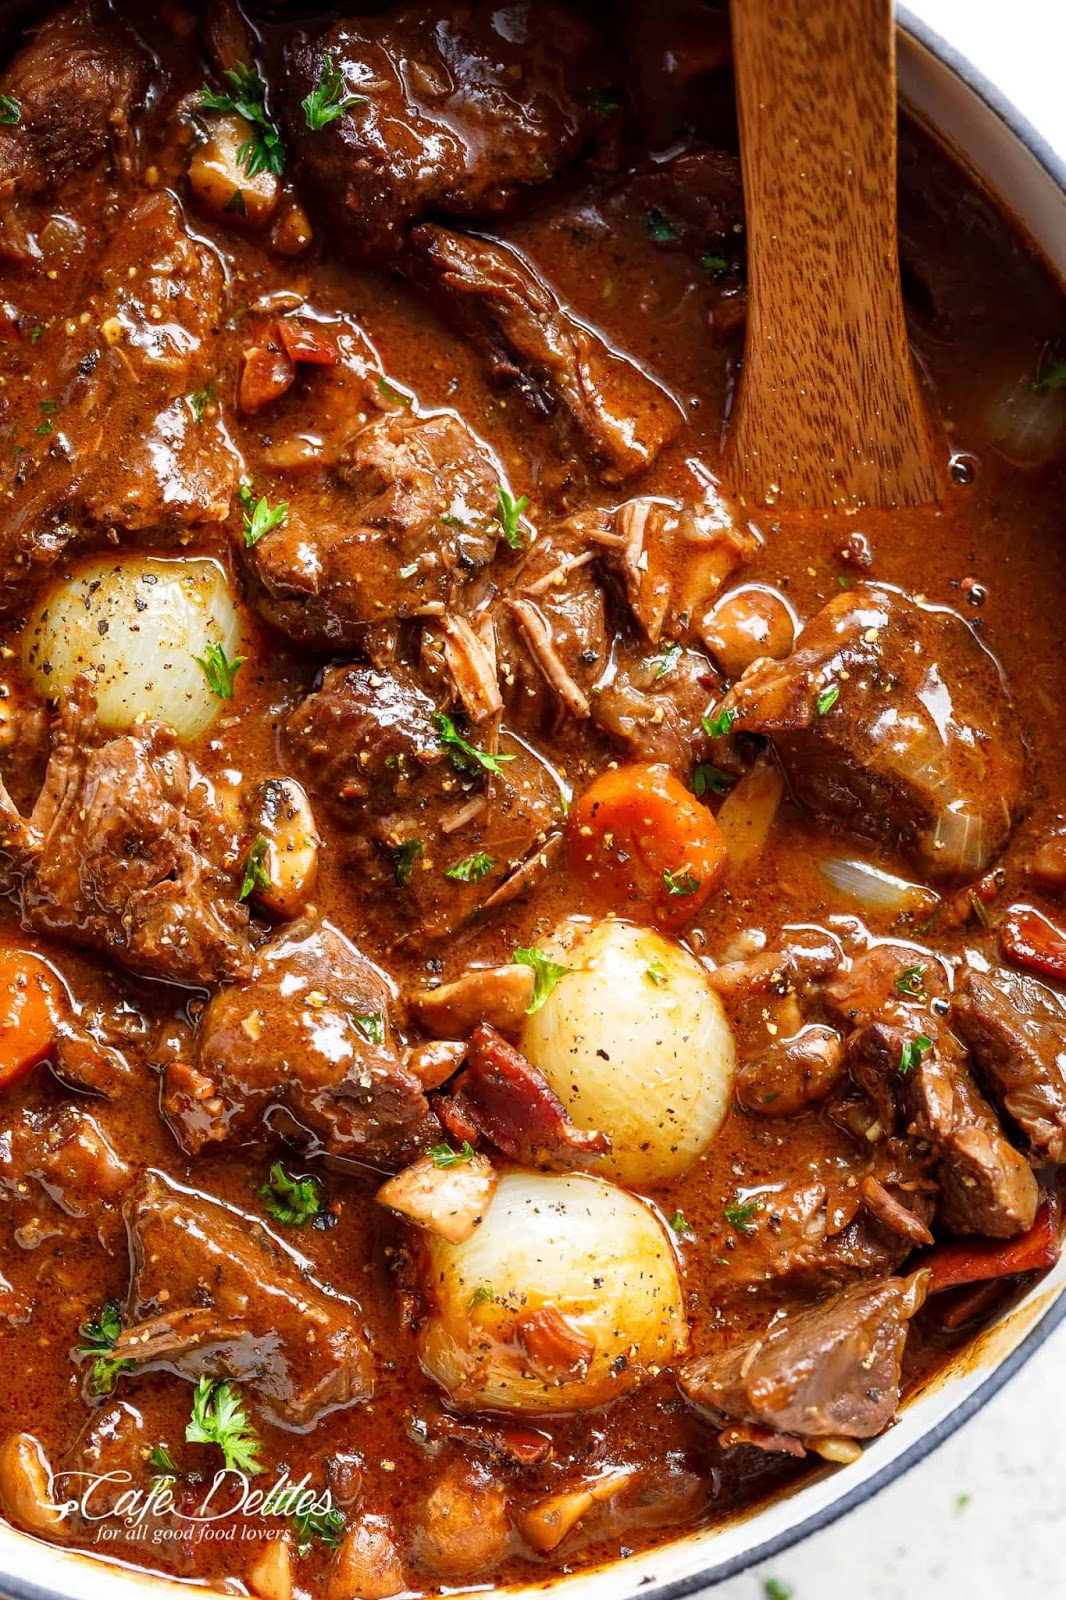 Beef Bourguignon #dinner #familyfood #beef #healthylunch #yummy